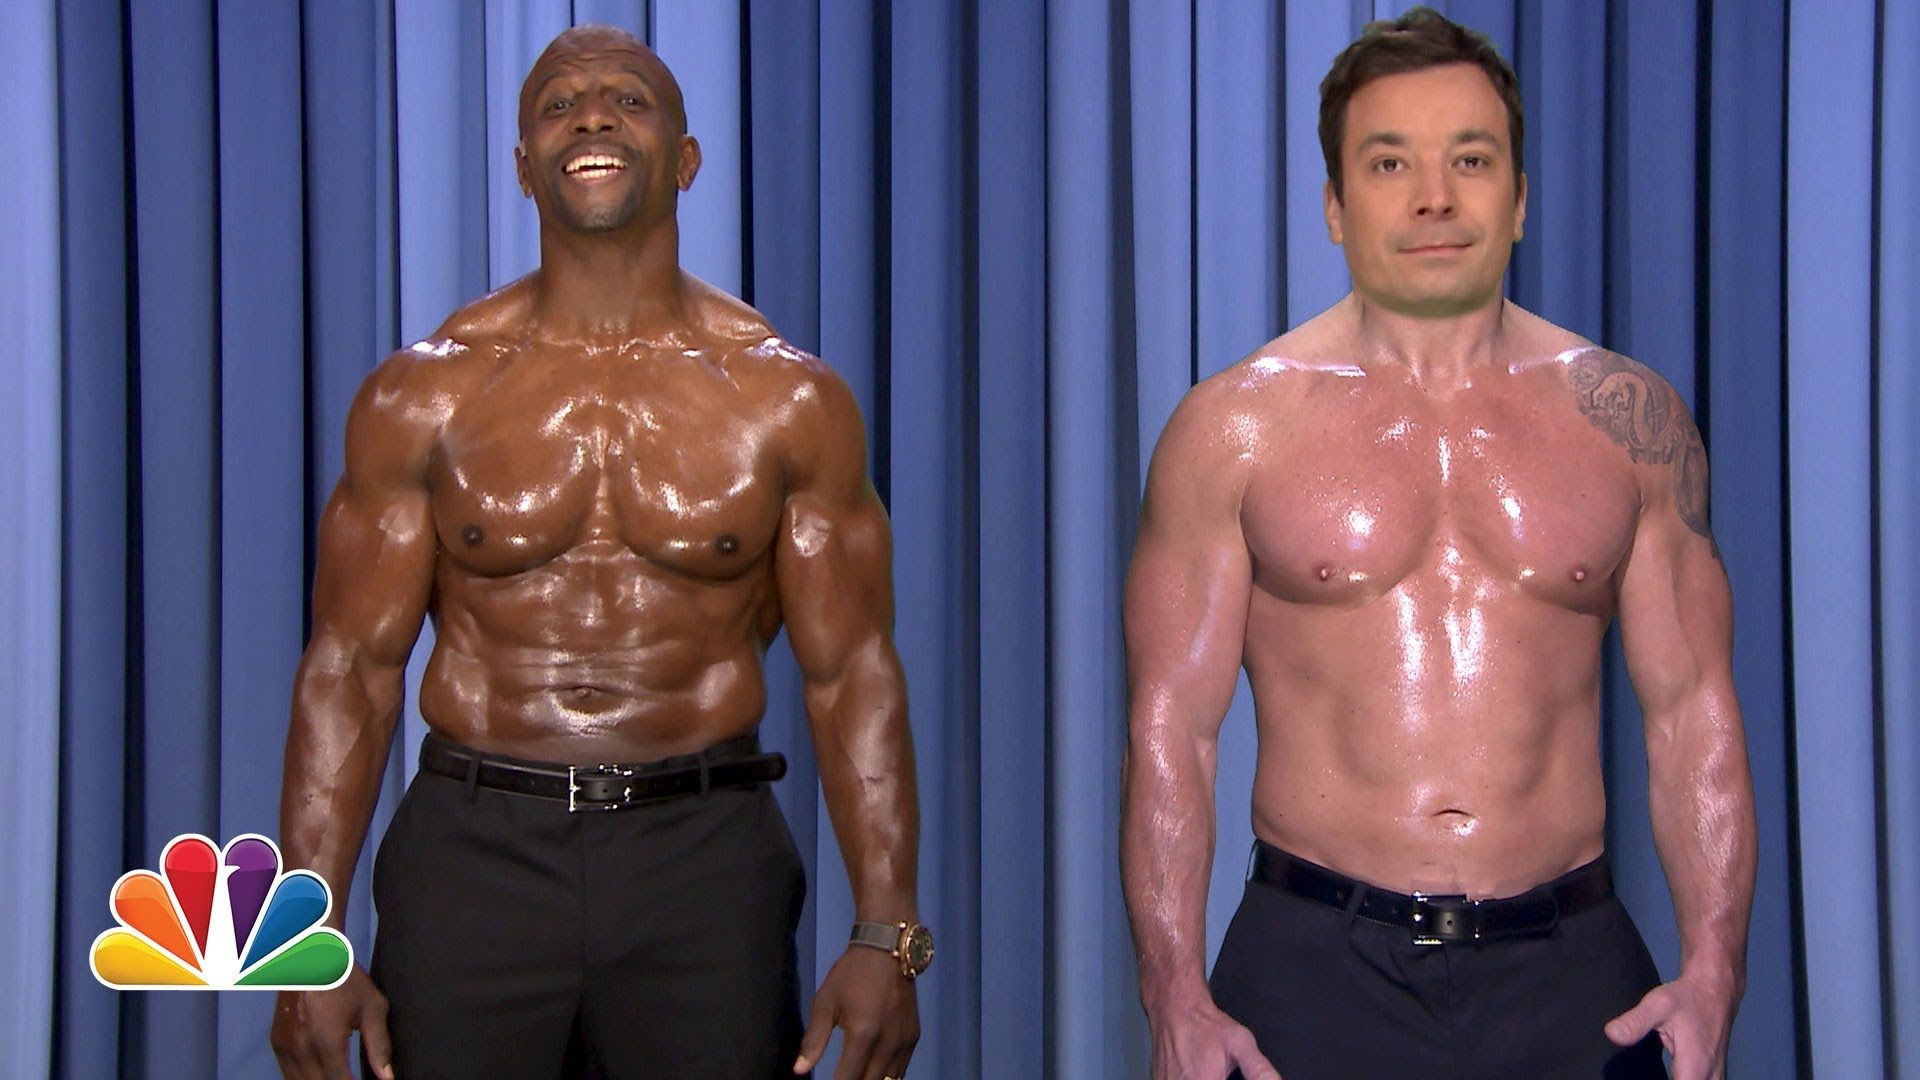 """Jimmy Fallon and Terry Crews put their pecs to work while singing a shirtless duet of the Paul McCartney and Stevie Wonder hit """"Ebony and Ivory."""" Subscribe N..."""